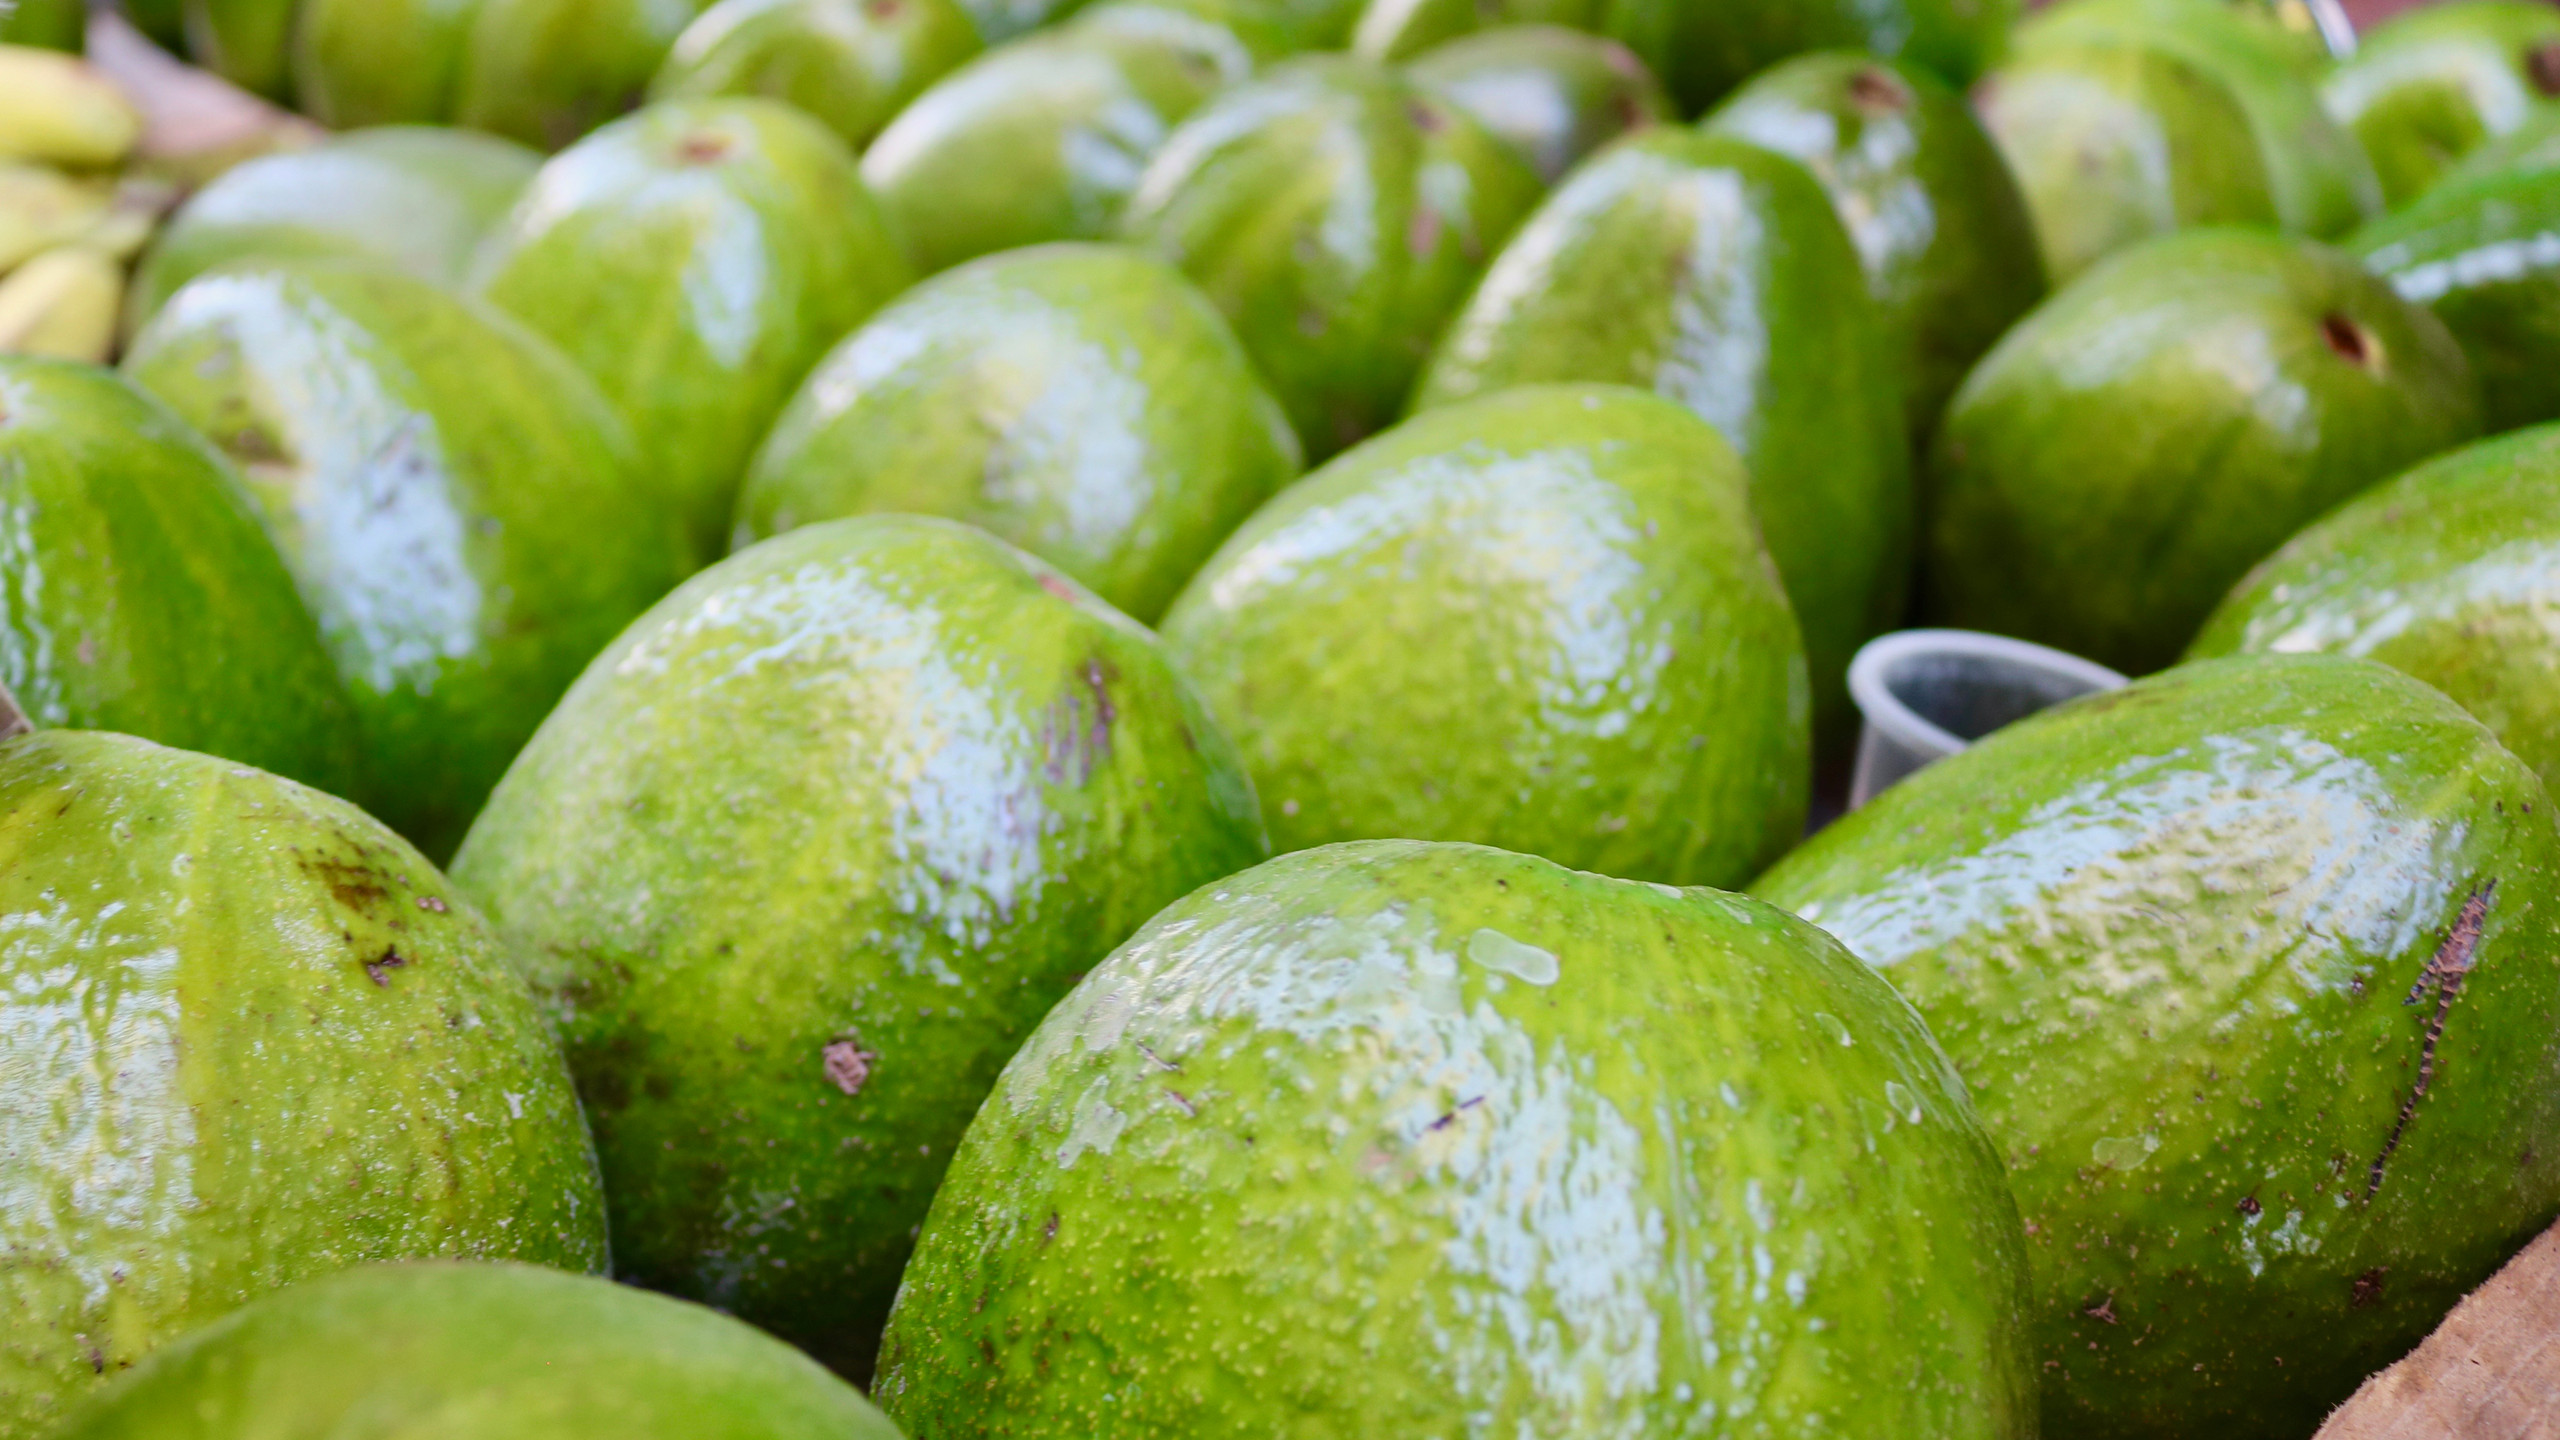 Close-up of massive avocados in a cart on the street of Old Havana.